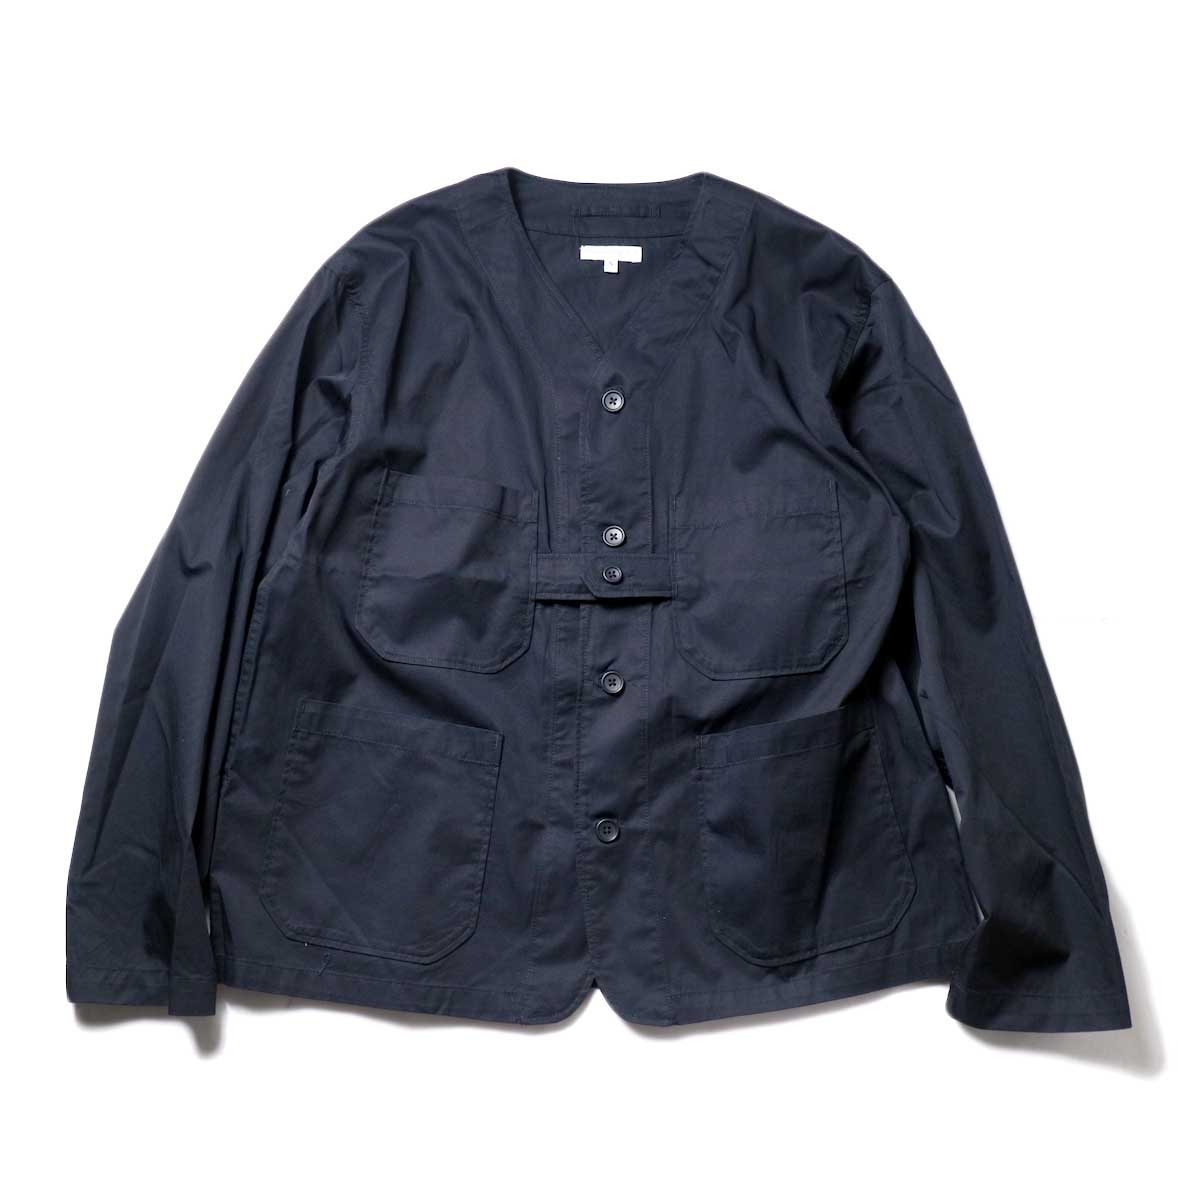 Engineered Garments / Cardigan Jacket -High Count Twill (Black)正面